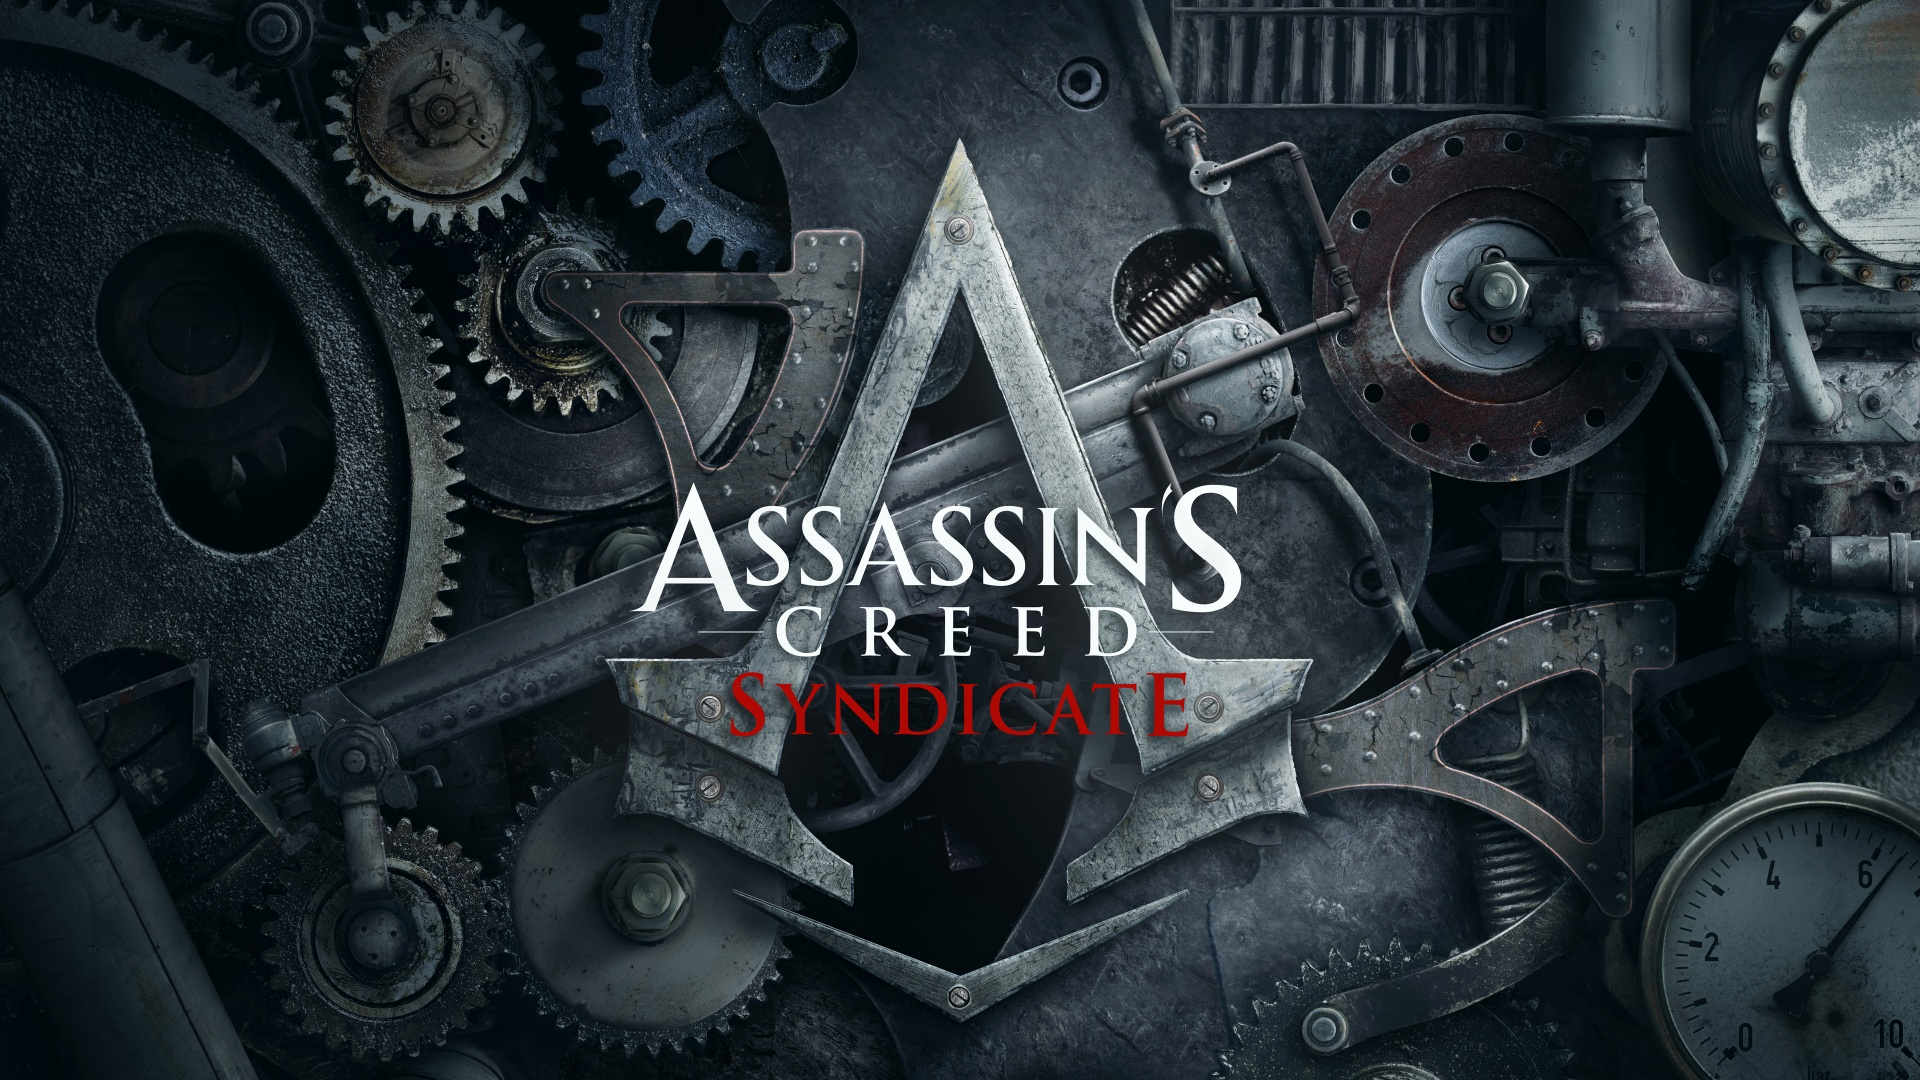 Assassins creed syndicate logo wallpapers in jpg format for free assassins creed syndicate logo wallpapers voltagebd Gallery